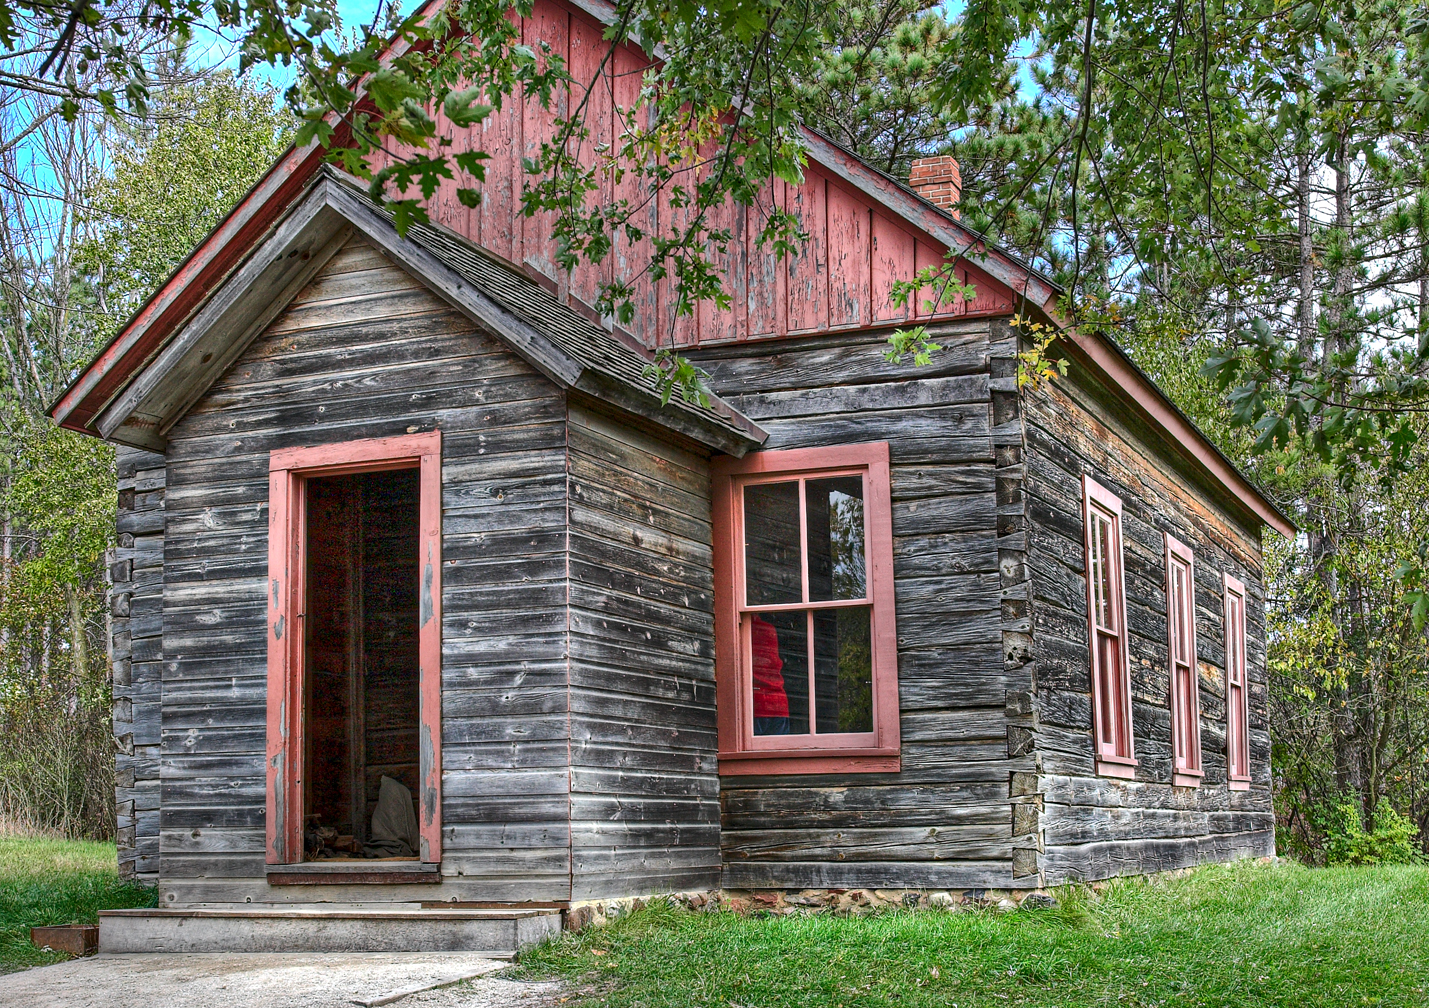 An image of the raspberry school at Old World Wisconsin